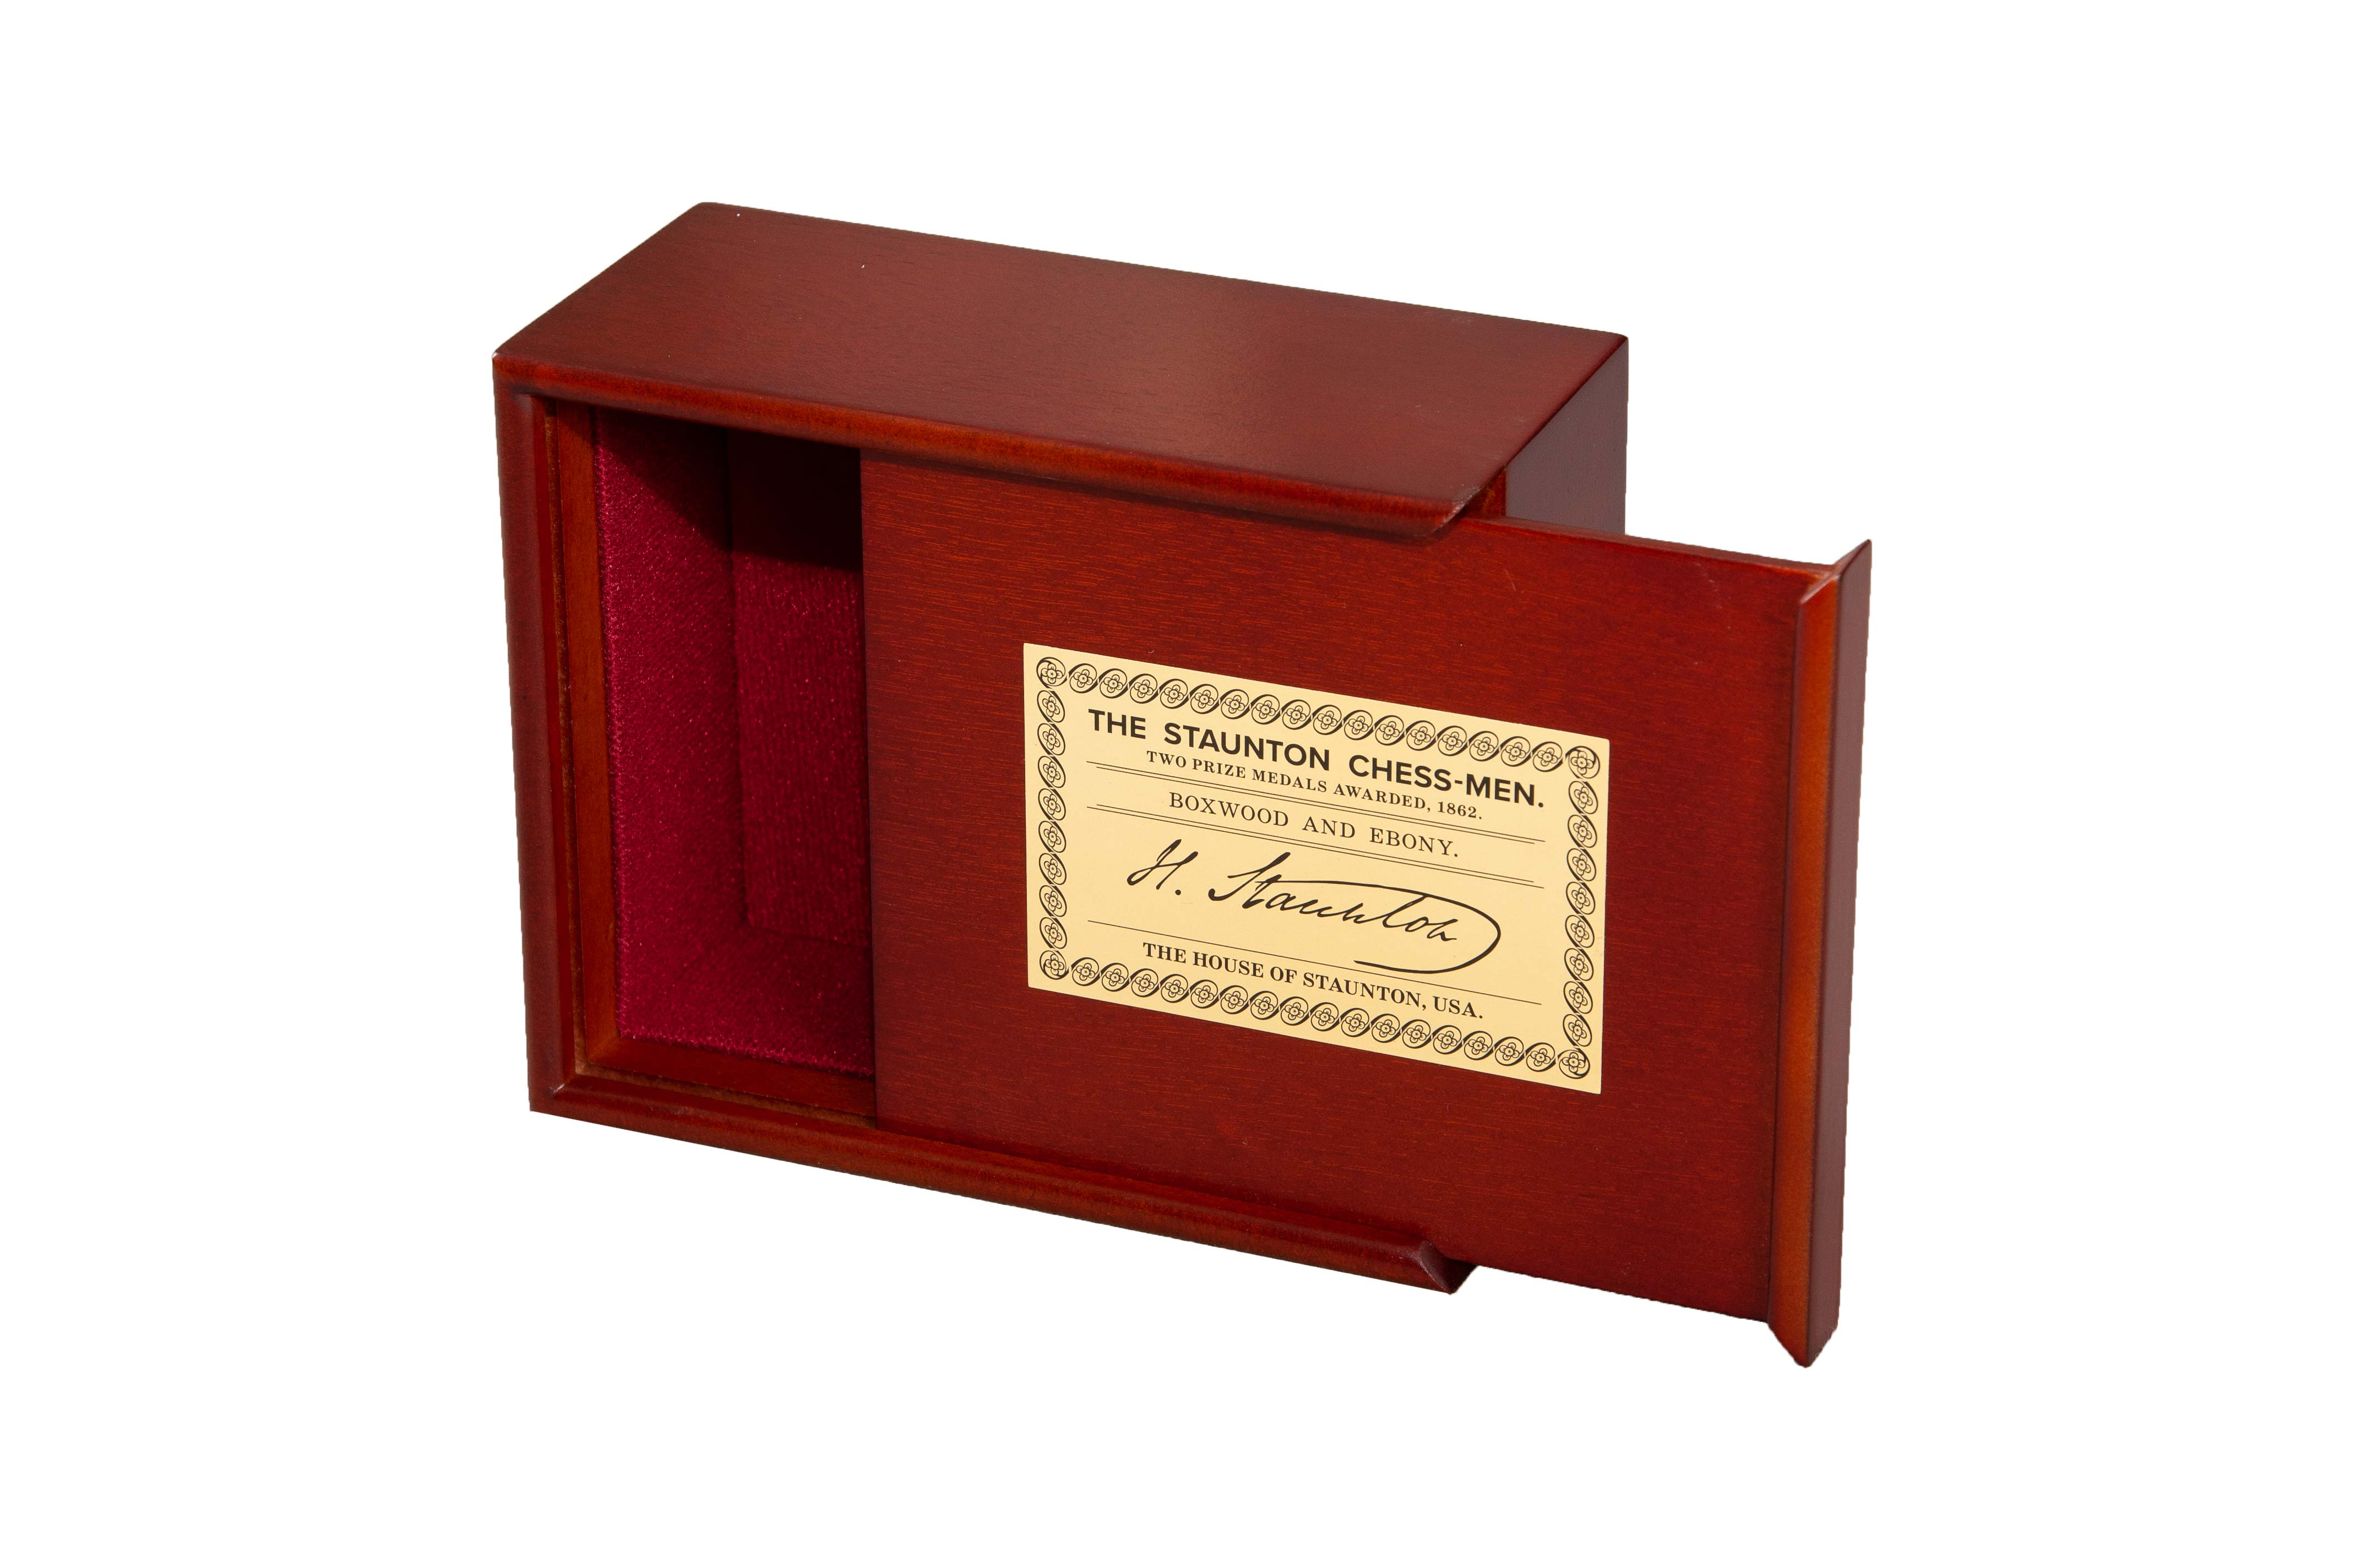 The 1862-1864 Library Slide Top Chess Box